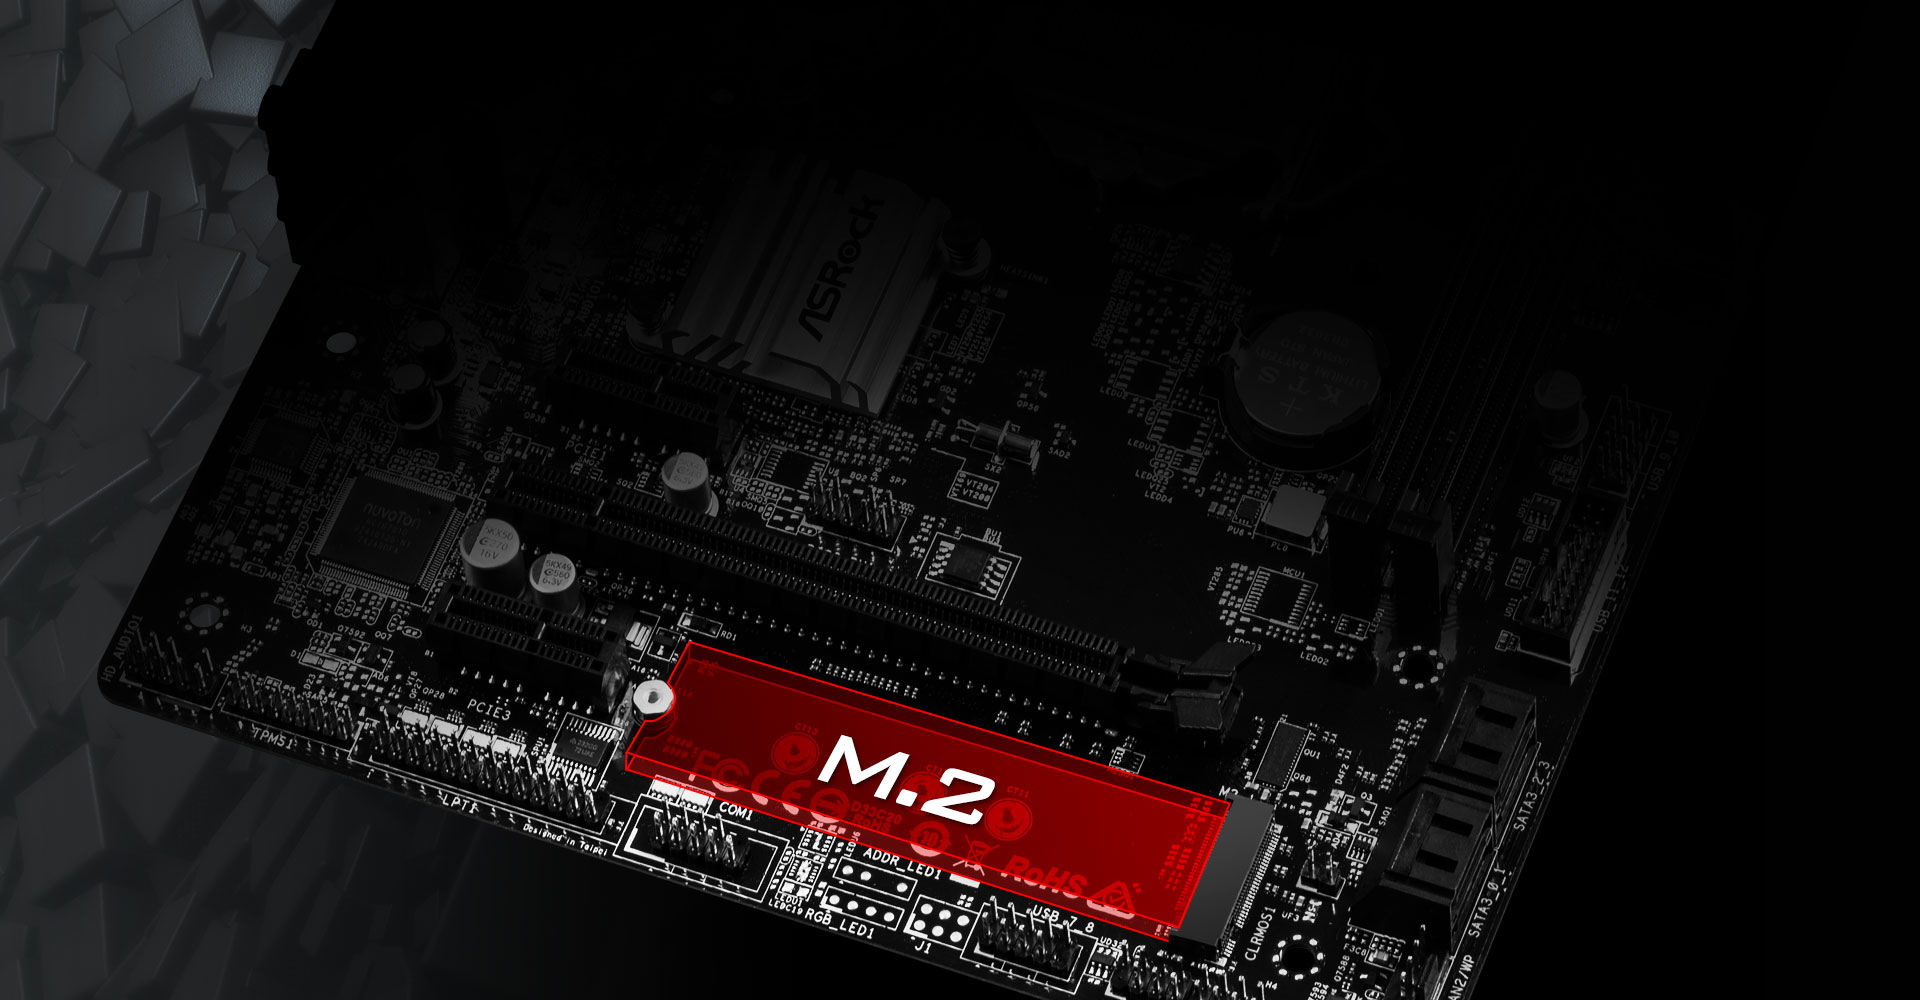 Asrock H310m Hdv M2 Motherboard H110m Ddr4 Socket 1151 In Addition It Also Supports Sata 3 6gb S Modules And Is Compatible With Asrocks U2 Kit For Installing Some Ssds